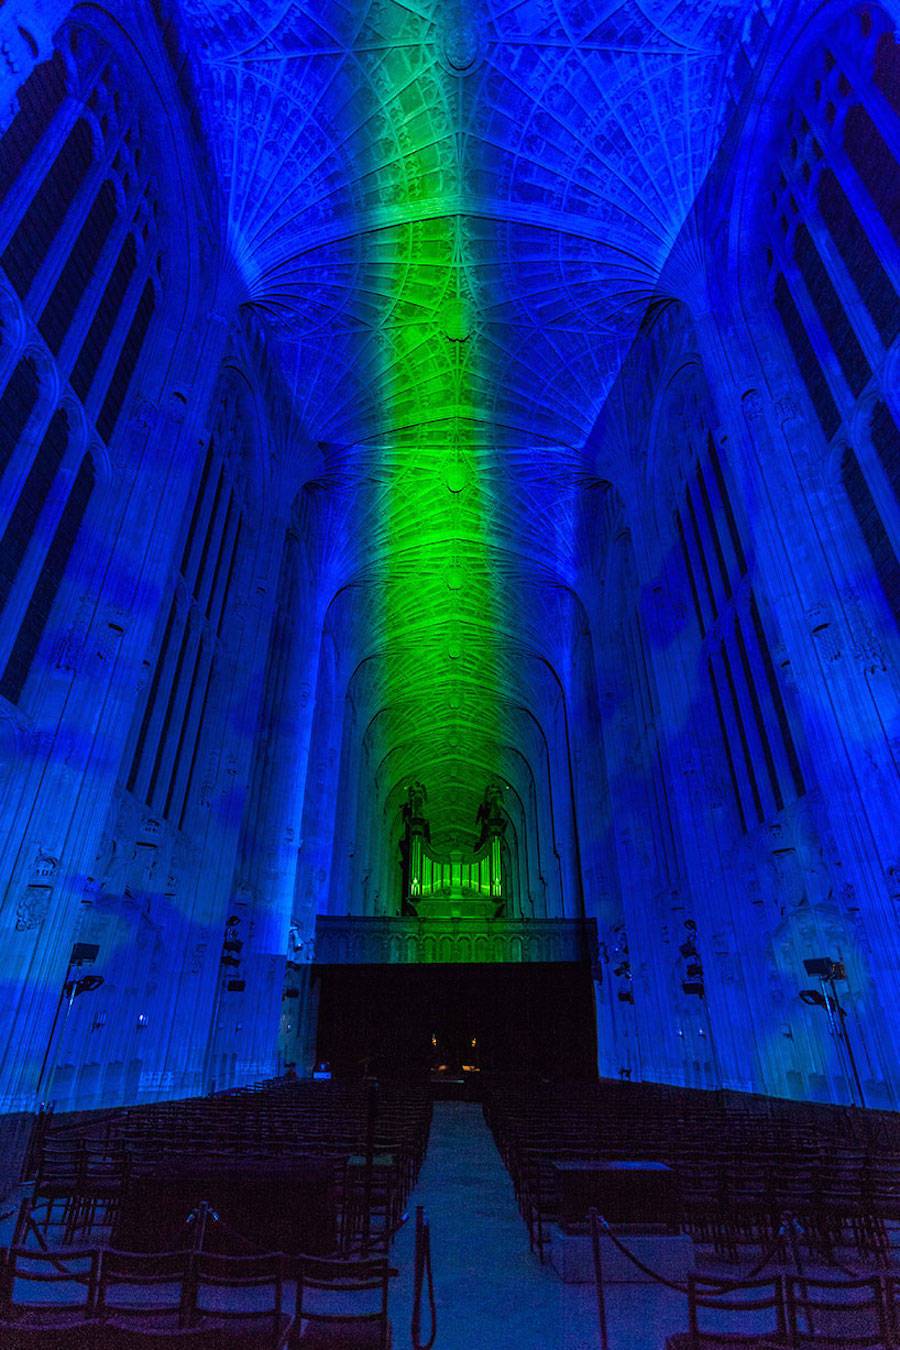 Impressive Images Projections Into a Chapel